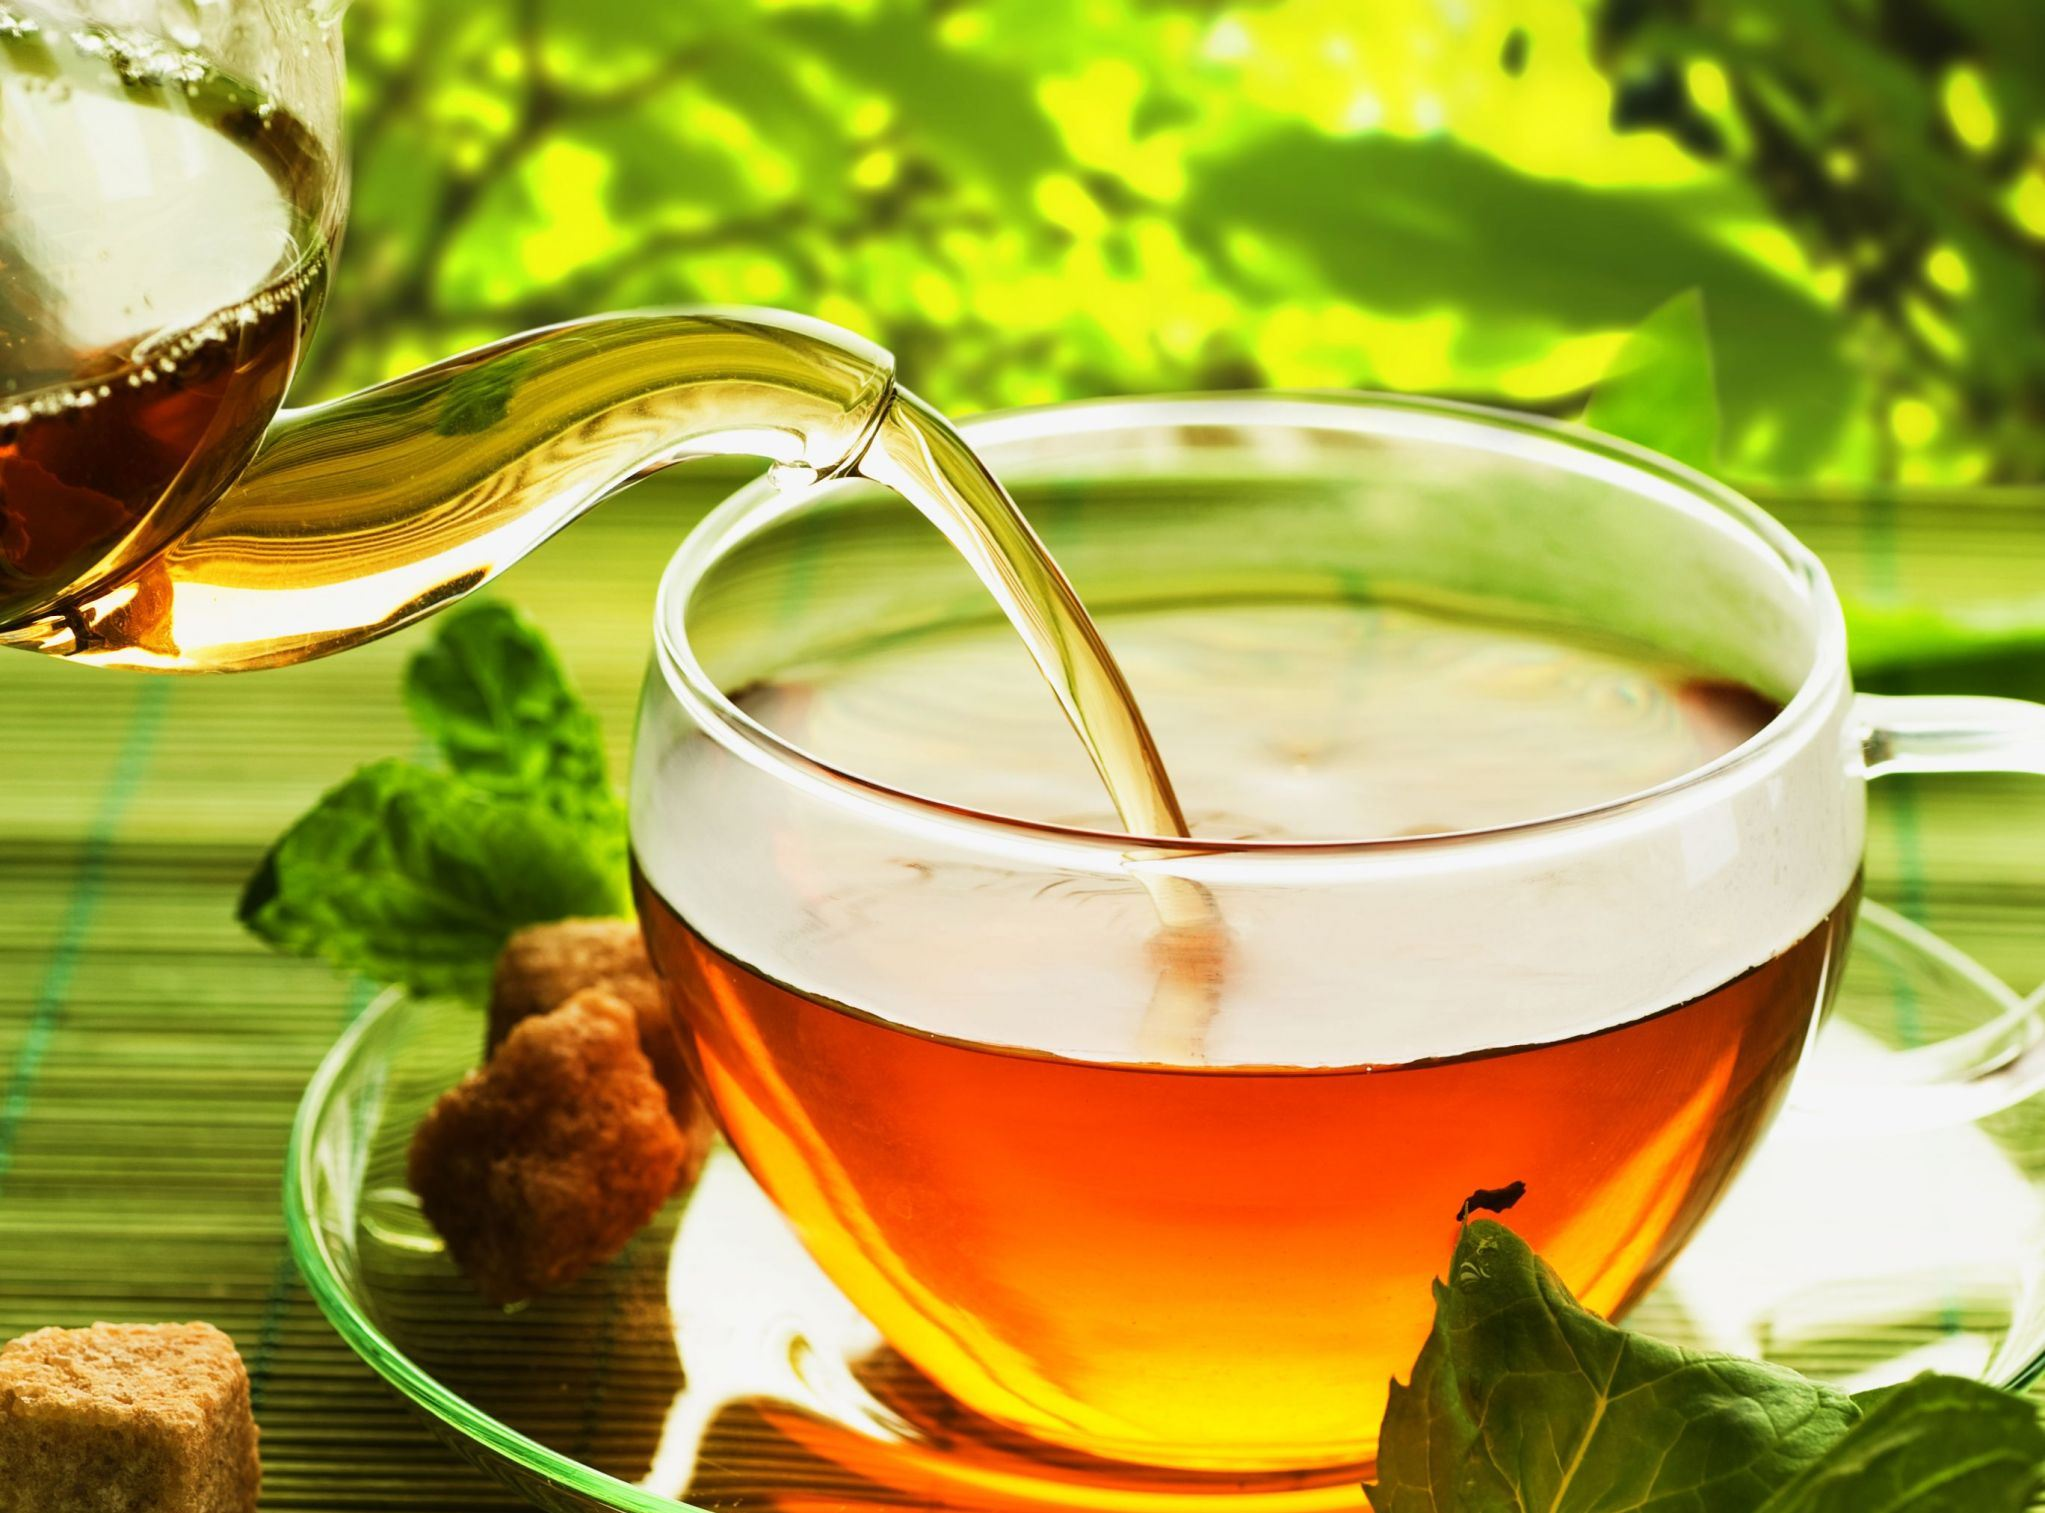 Green Tea A Good Tool for Weight Loss?